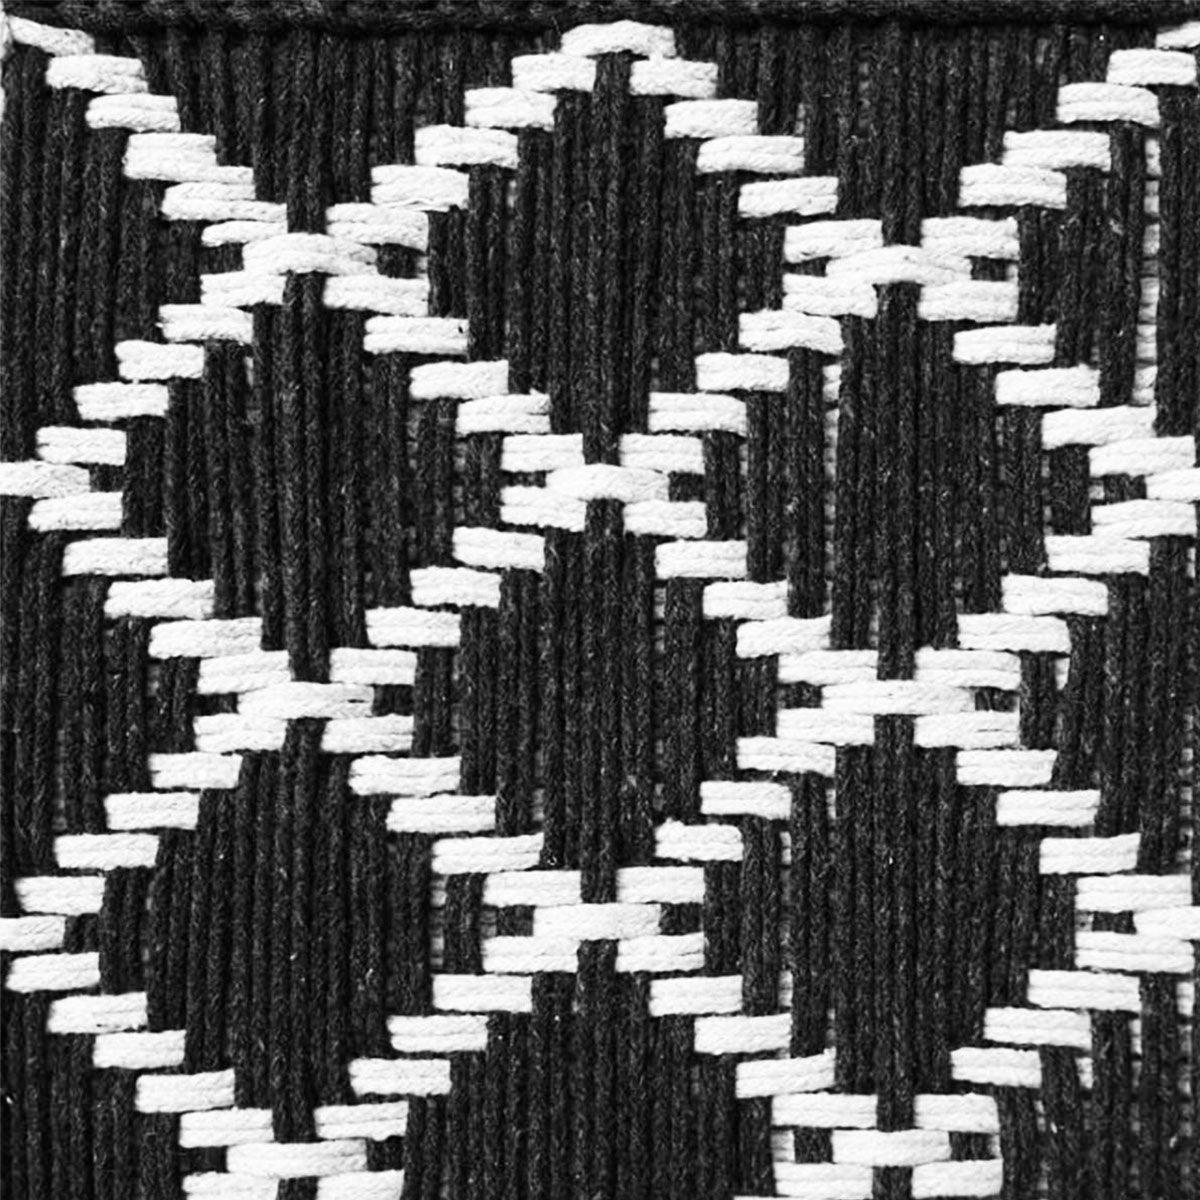 Every Room Handwoven Black & White Cotton Stool 1.0